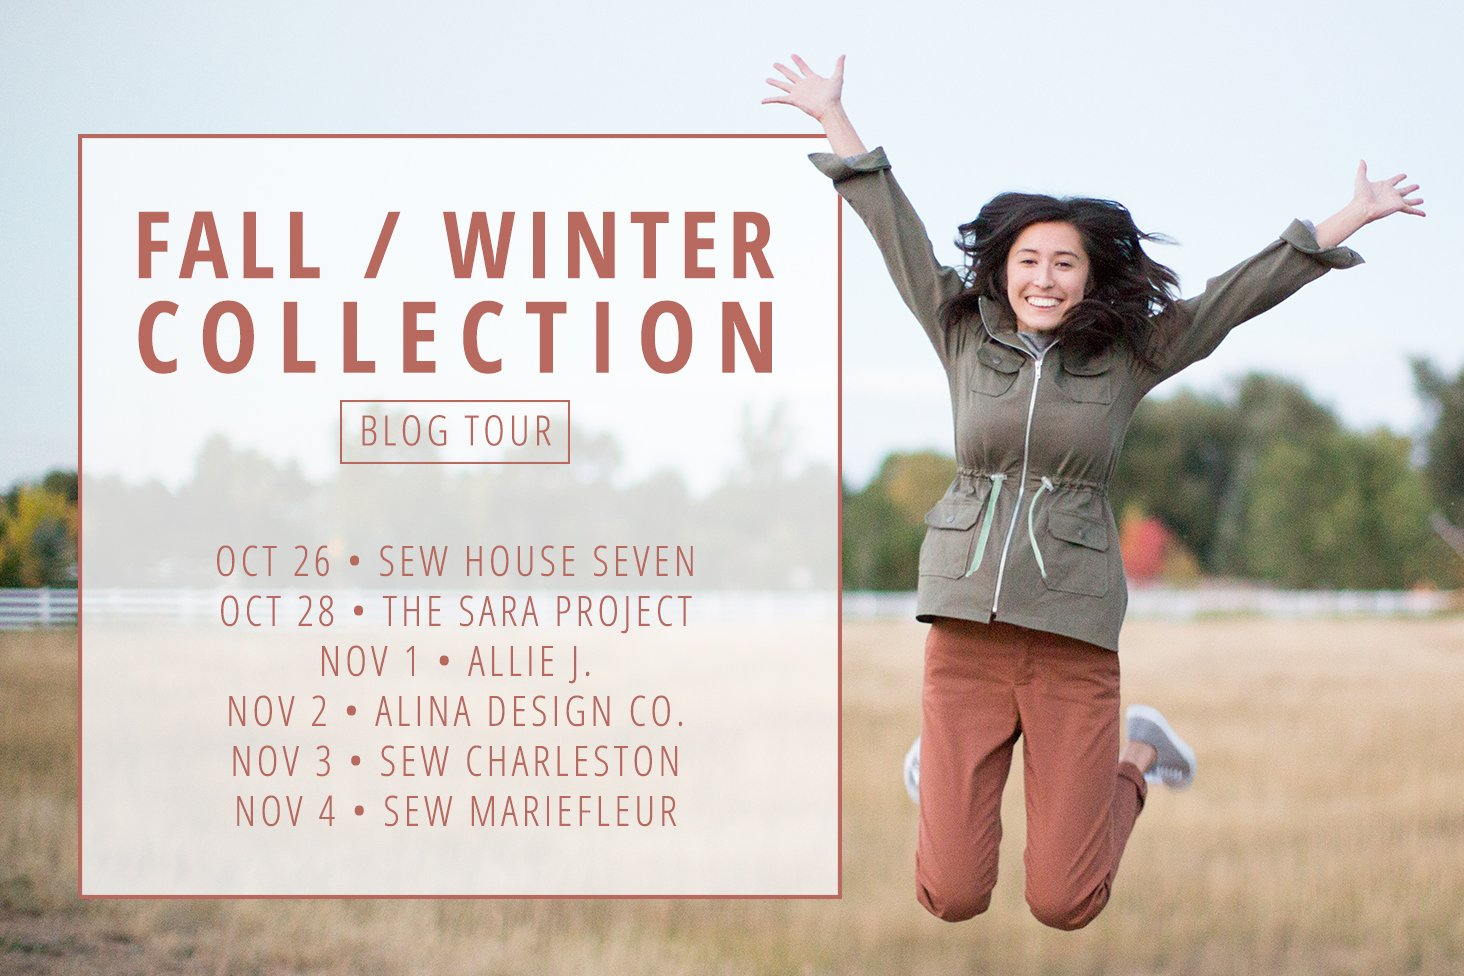 fall-winter-collection-blog-tour2x